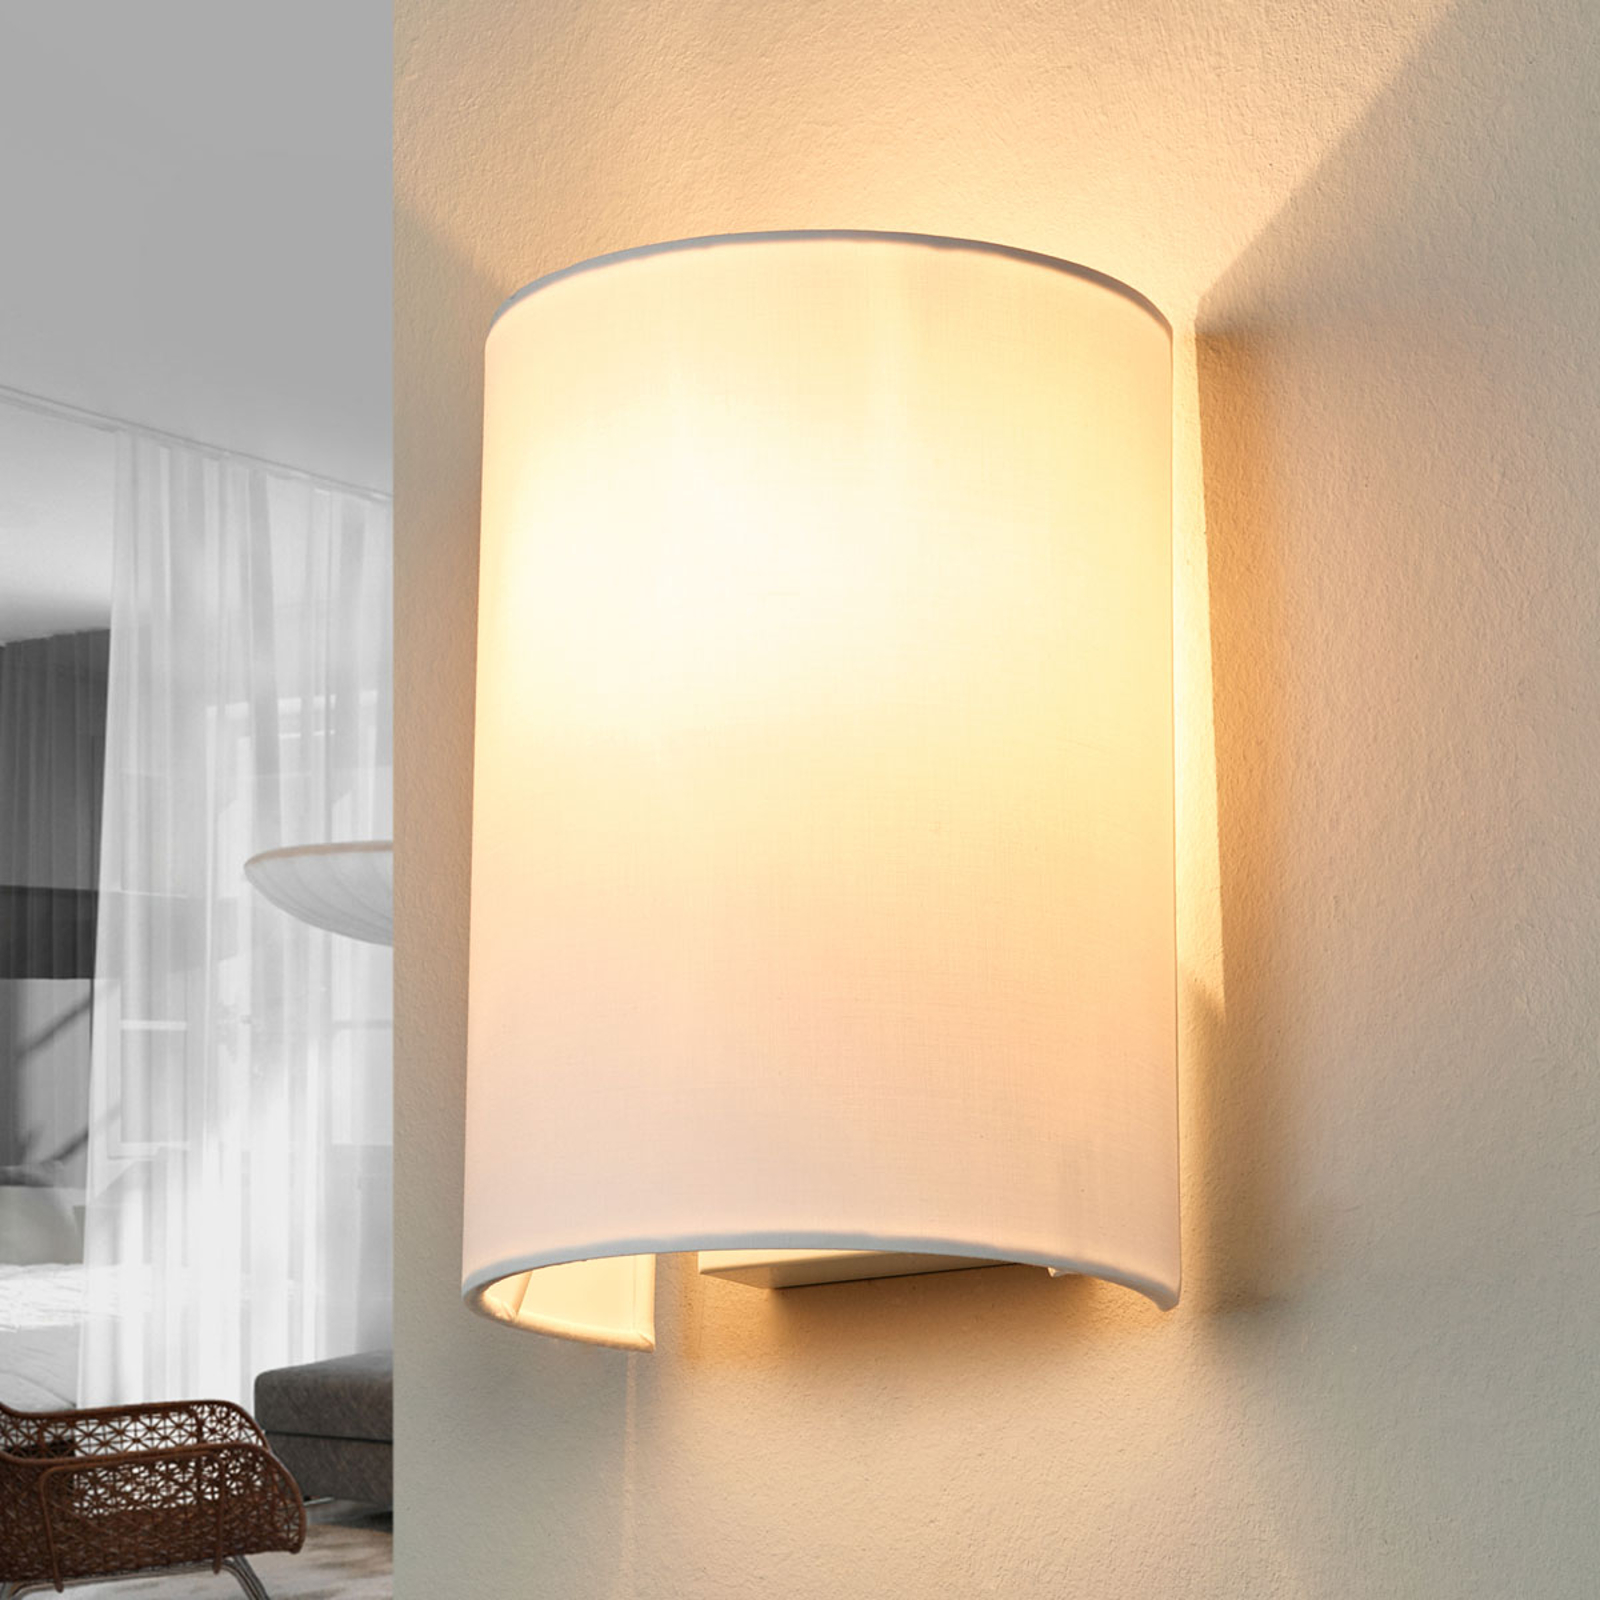 White Coral fabric wall light_6054975_1